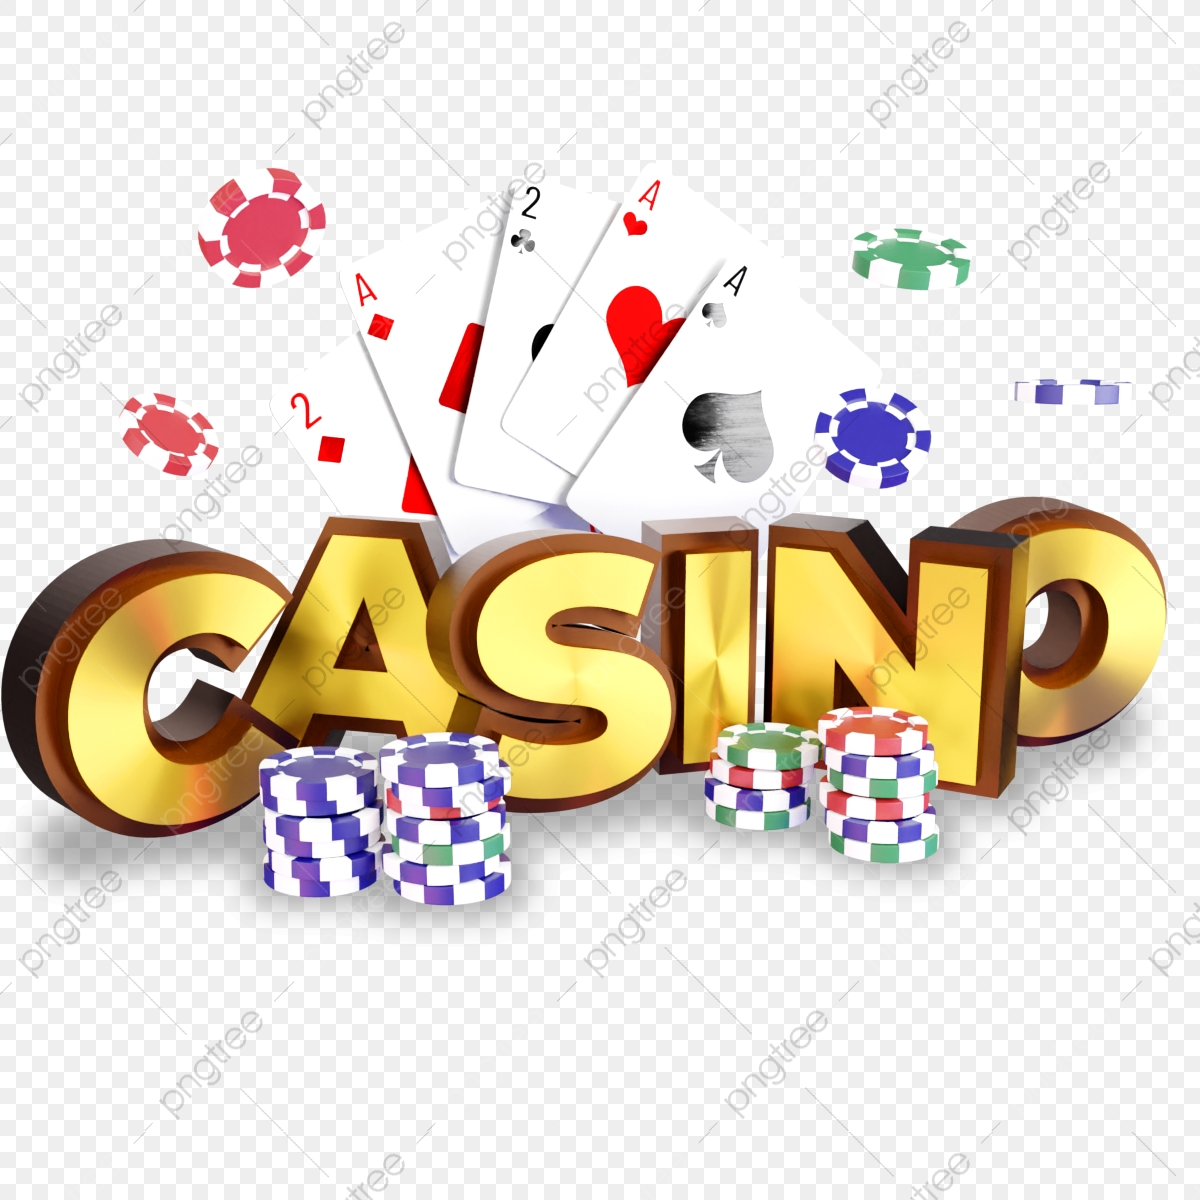 Kartu Poker Png Images Vector And Psd Files Free Download On Pngtree